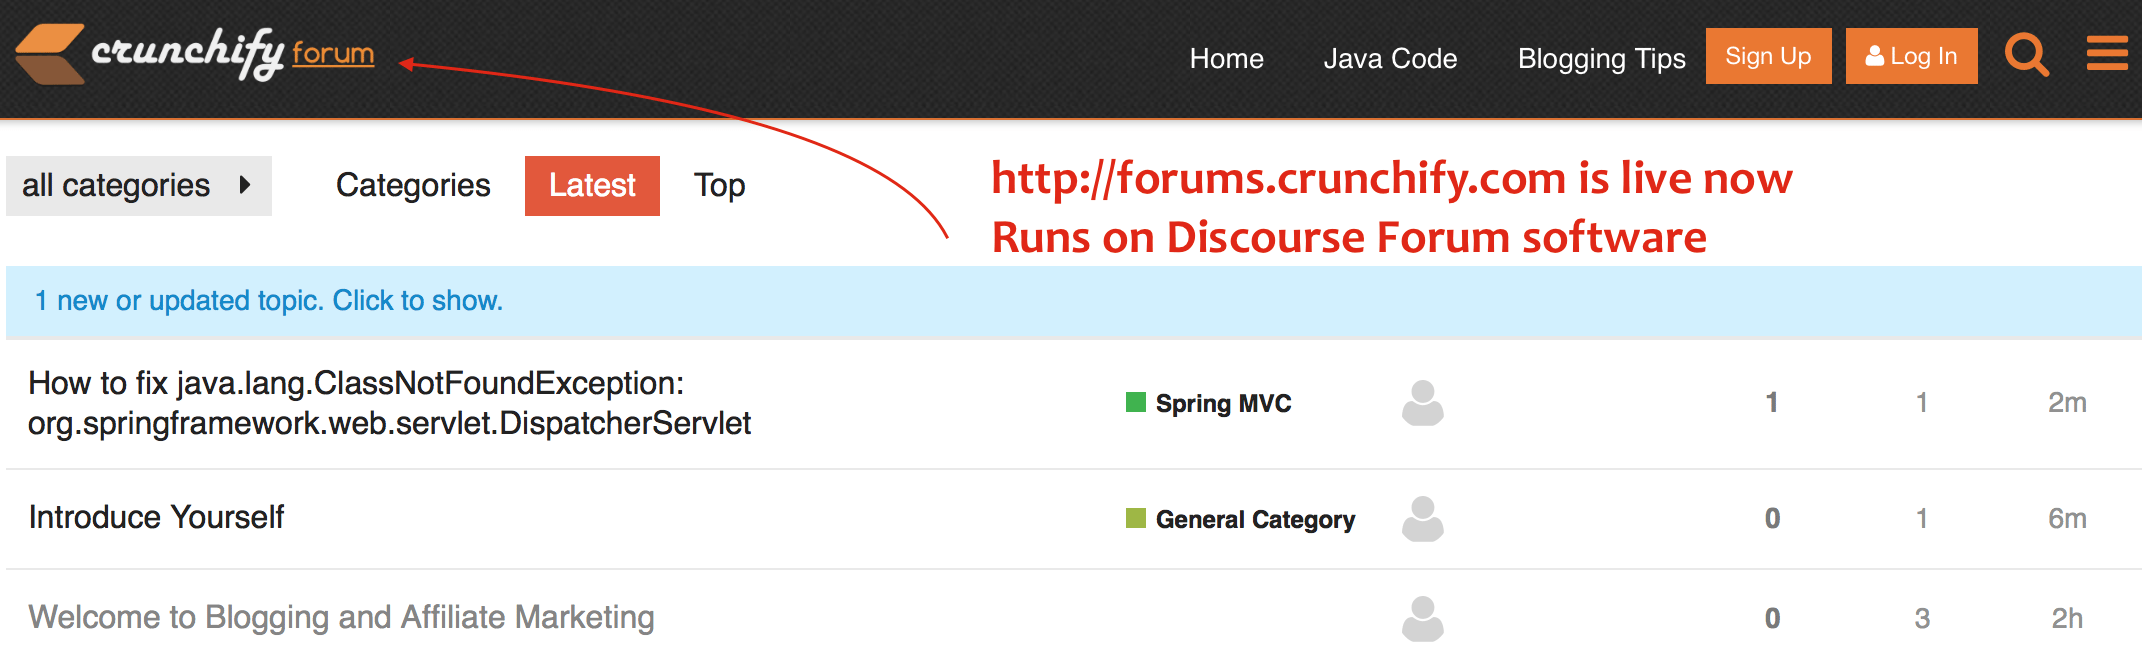 forums.crunchify.com is live - give help - get help